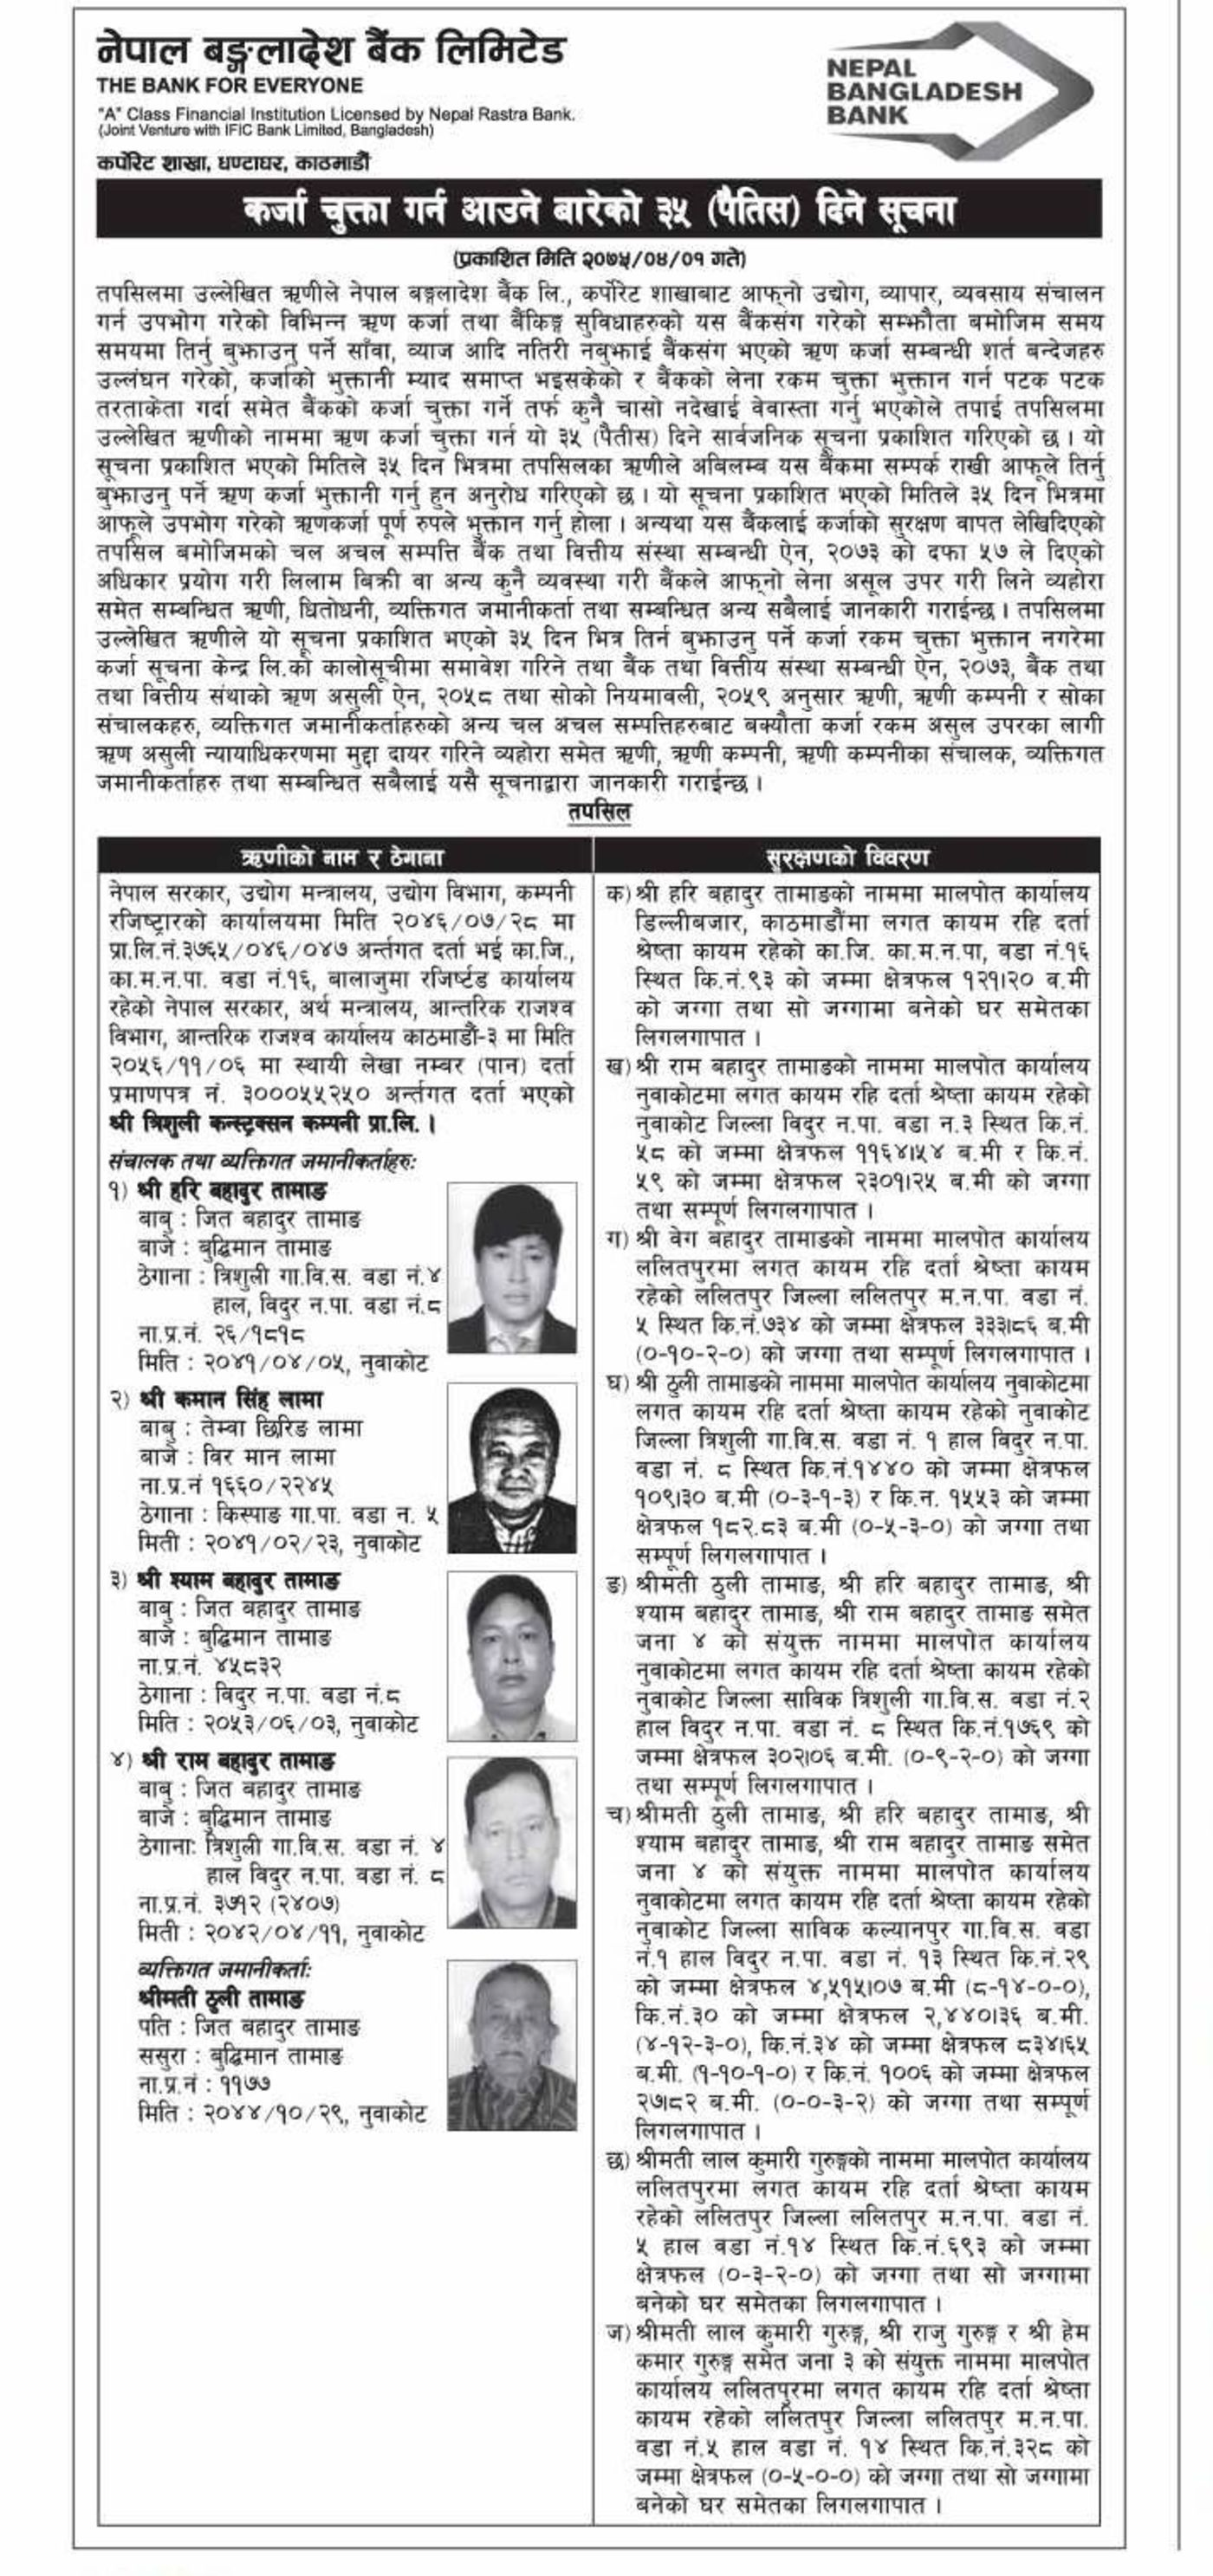 joint venture banks in nepal